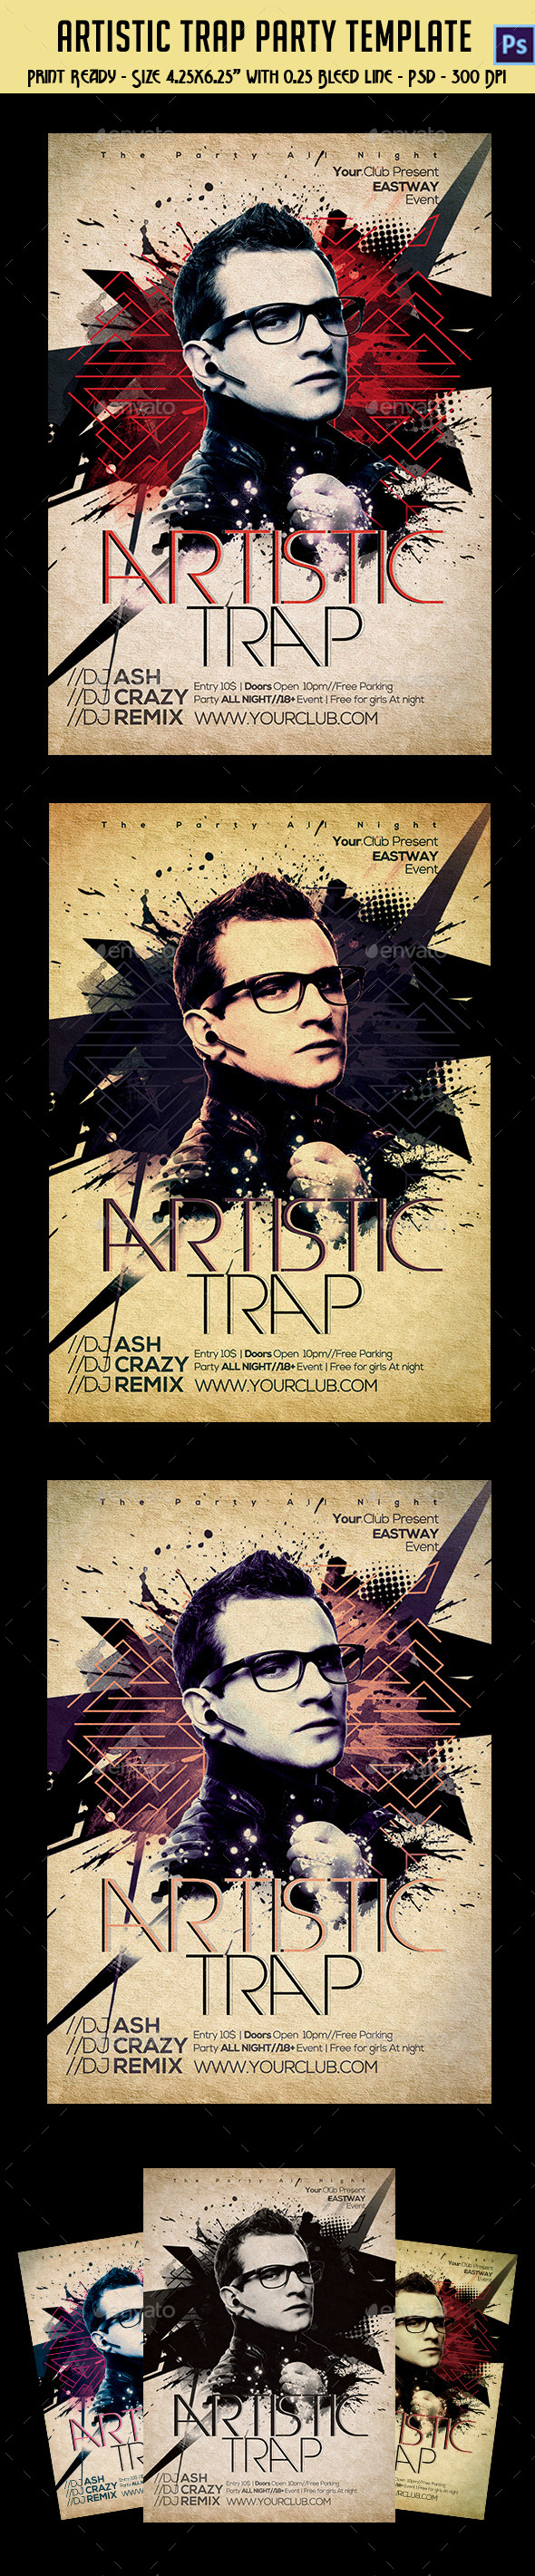 GraphicRiver Artistic Trap Party Flyer 10444896